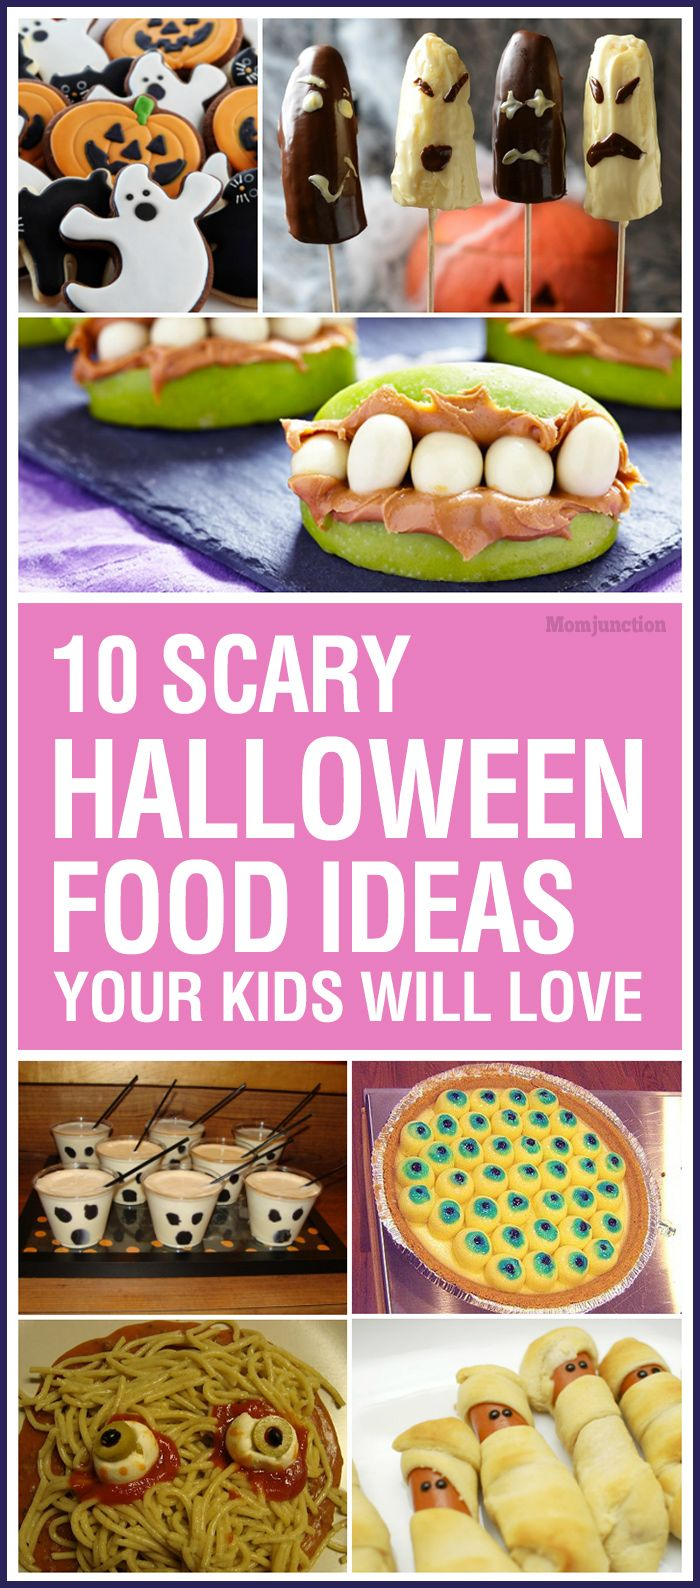 10 scary halloween food ideas for kids in 2018 | food * family *home